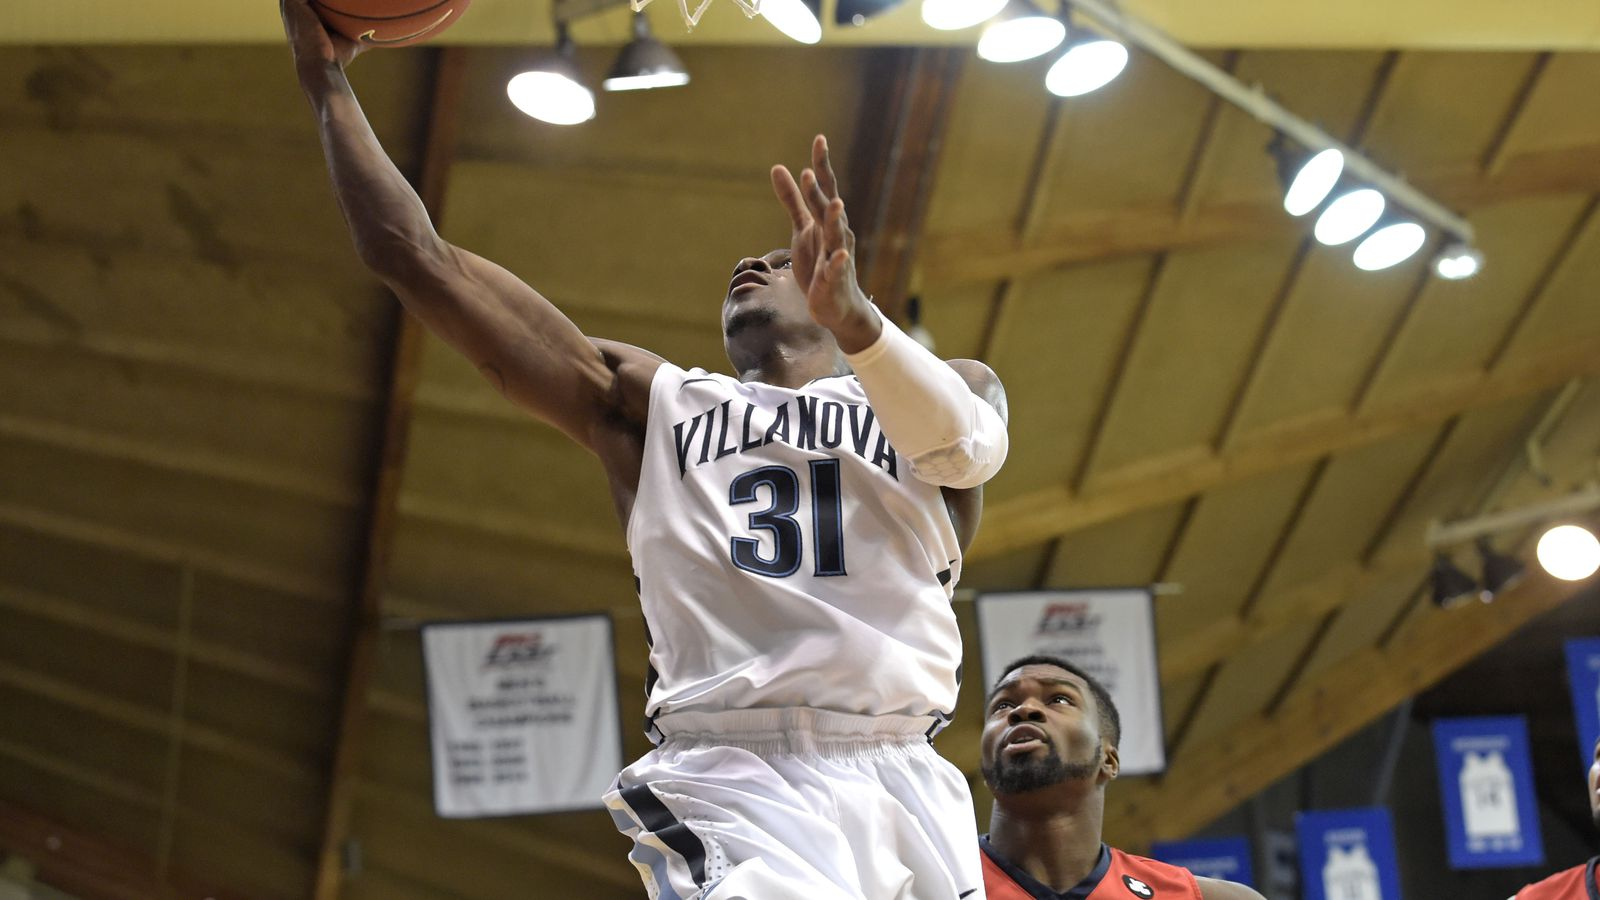 villanova supplement essay what sets your heart on fire